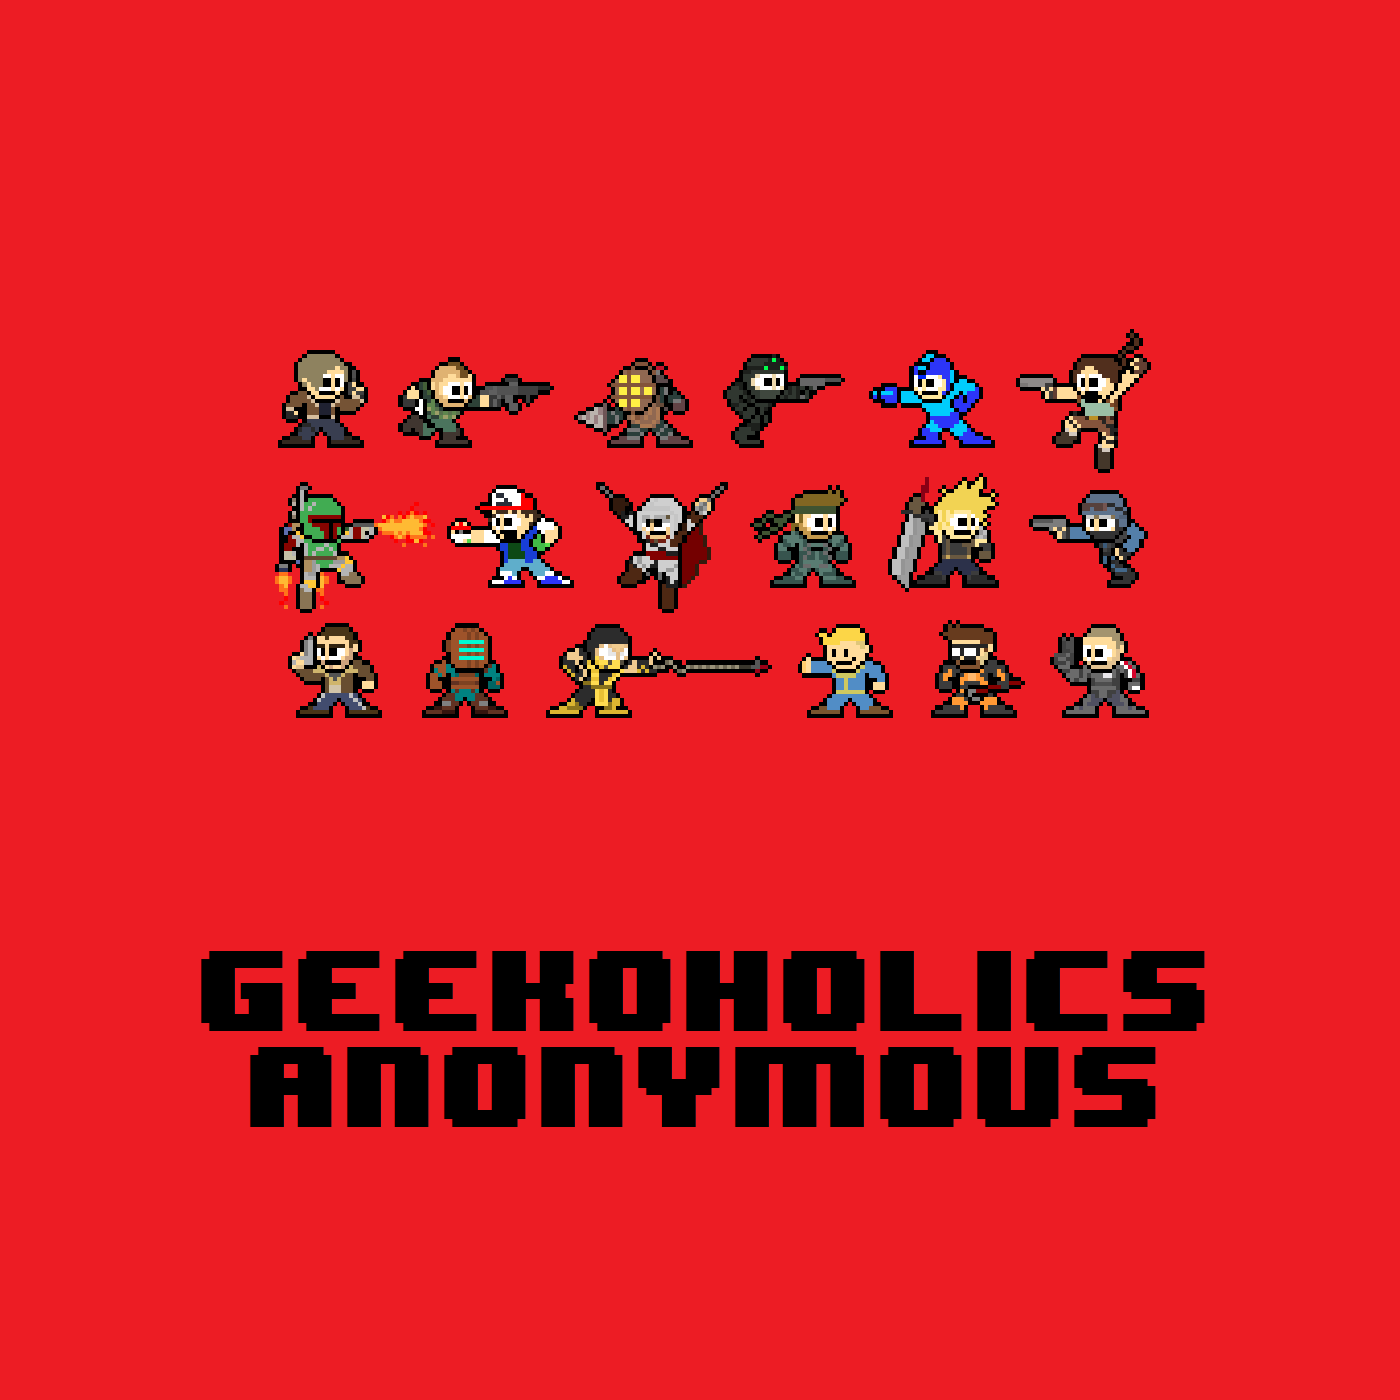 Destiny 2 Season of the Lost, Psychonauts 2, Tokyo Game Show and more - Geekoholics Anonymous Podcast 321 show art